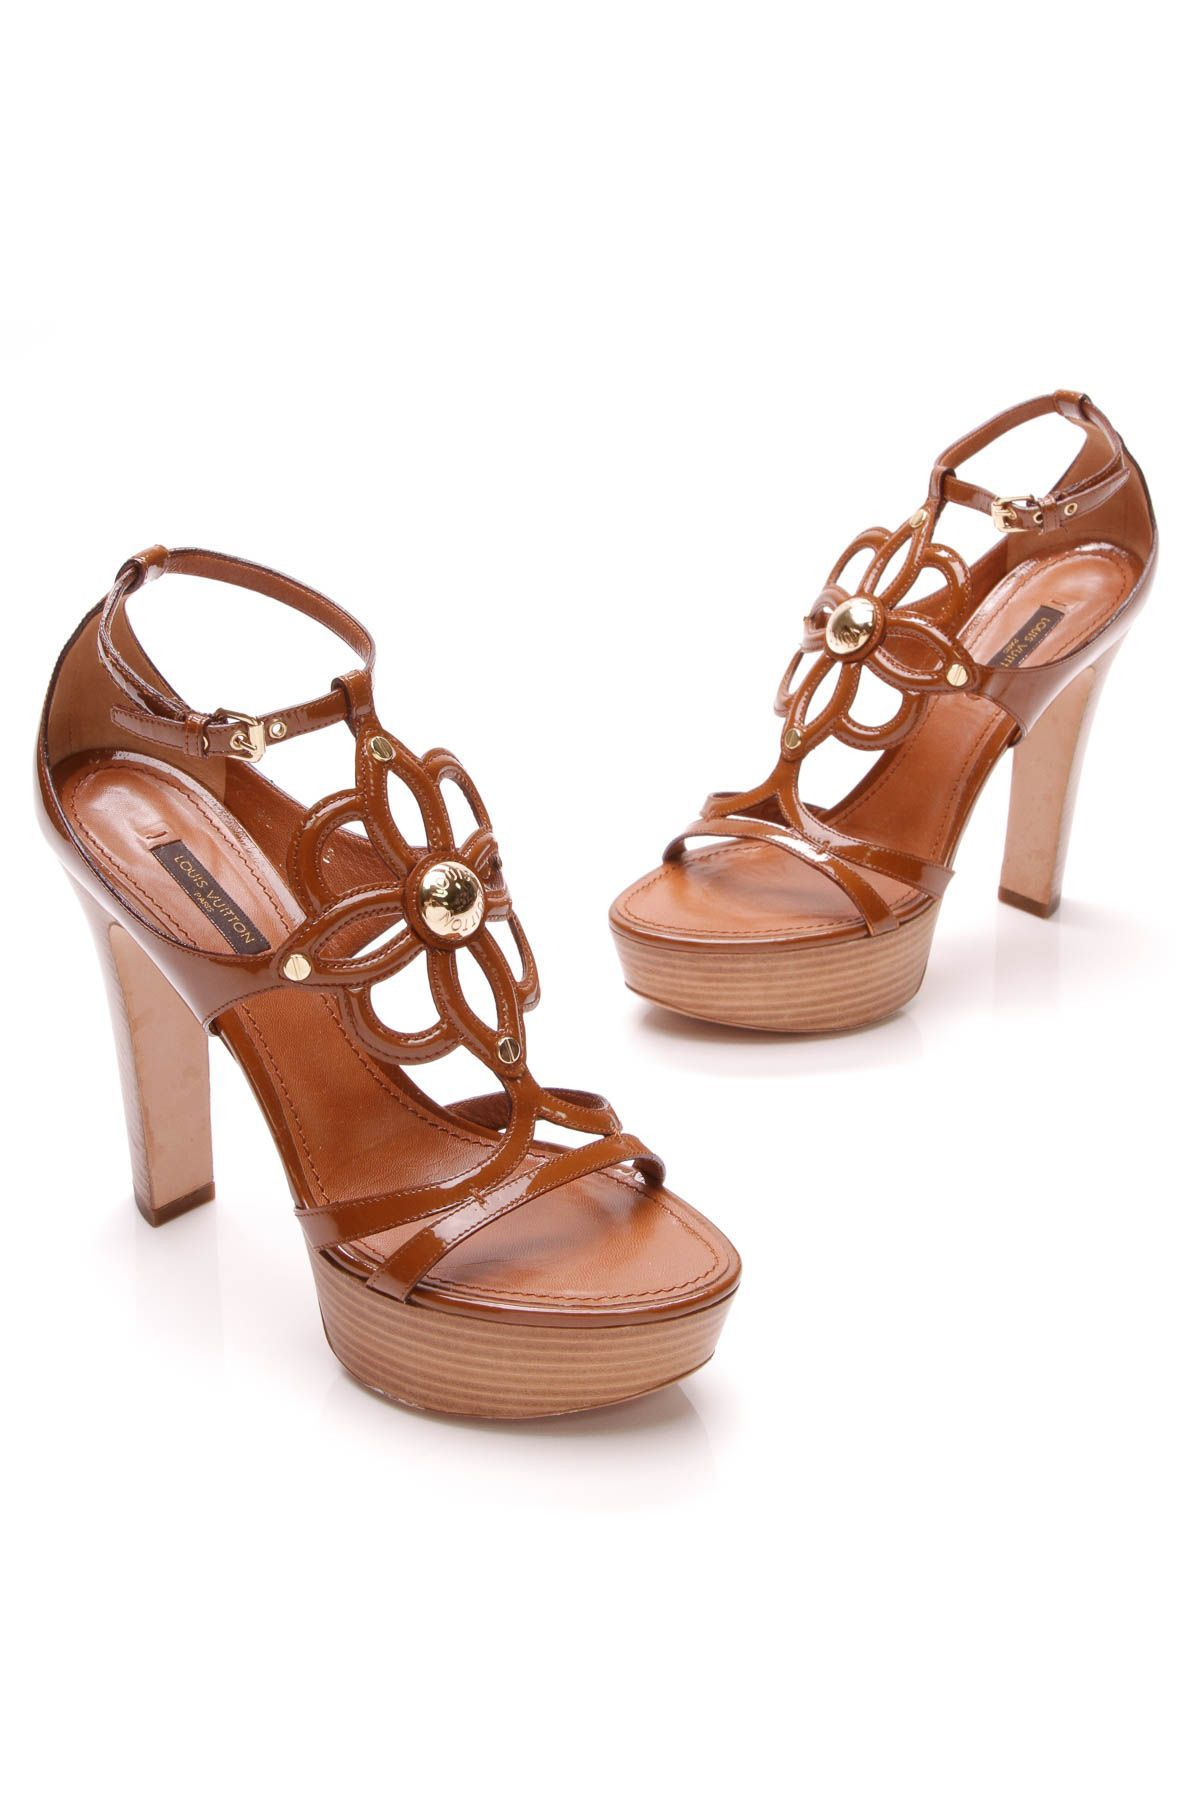 845dfe23f14 Louis Vuitton brown gloss platform sandals with flower detail are the IT summer  sandal heel!